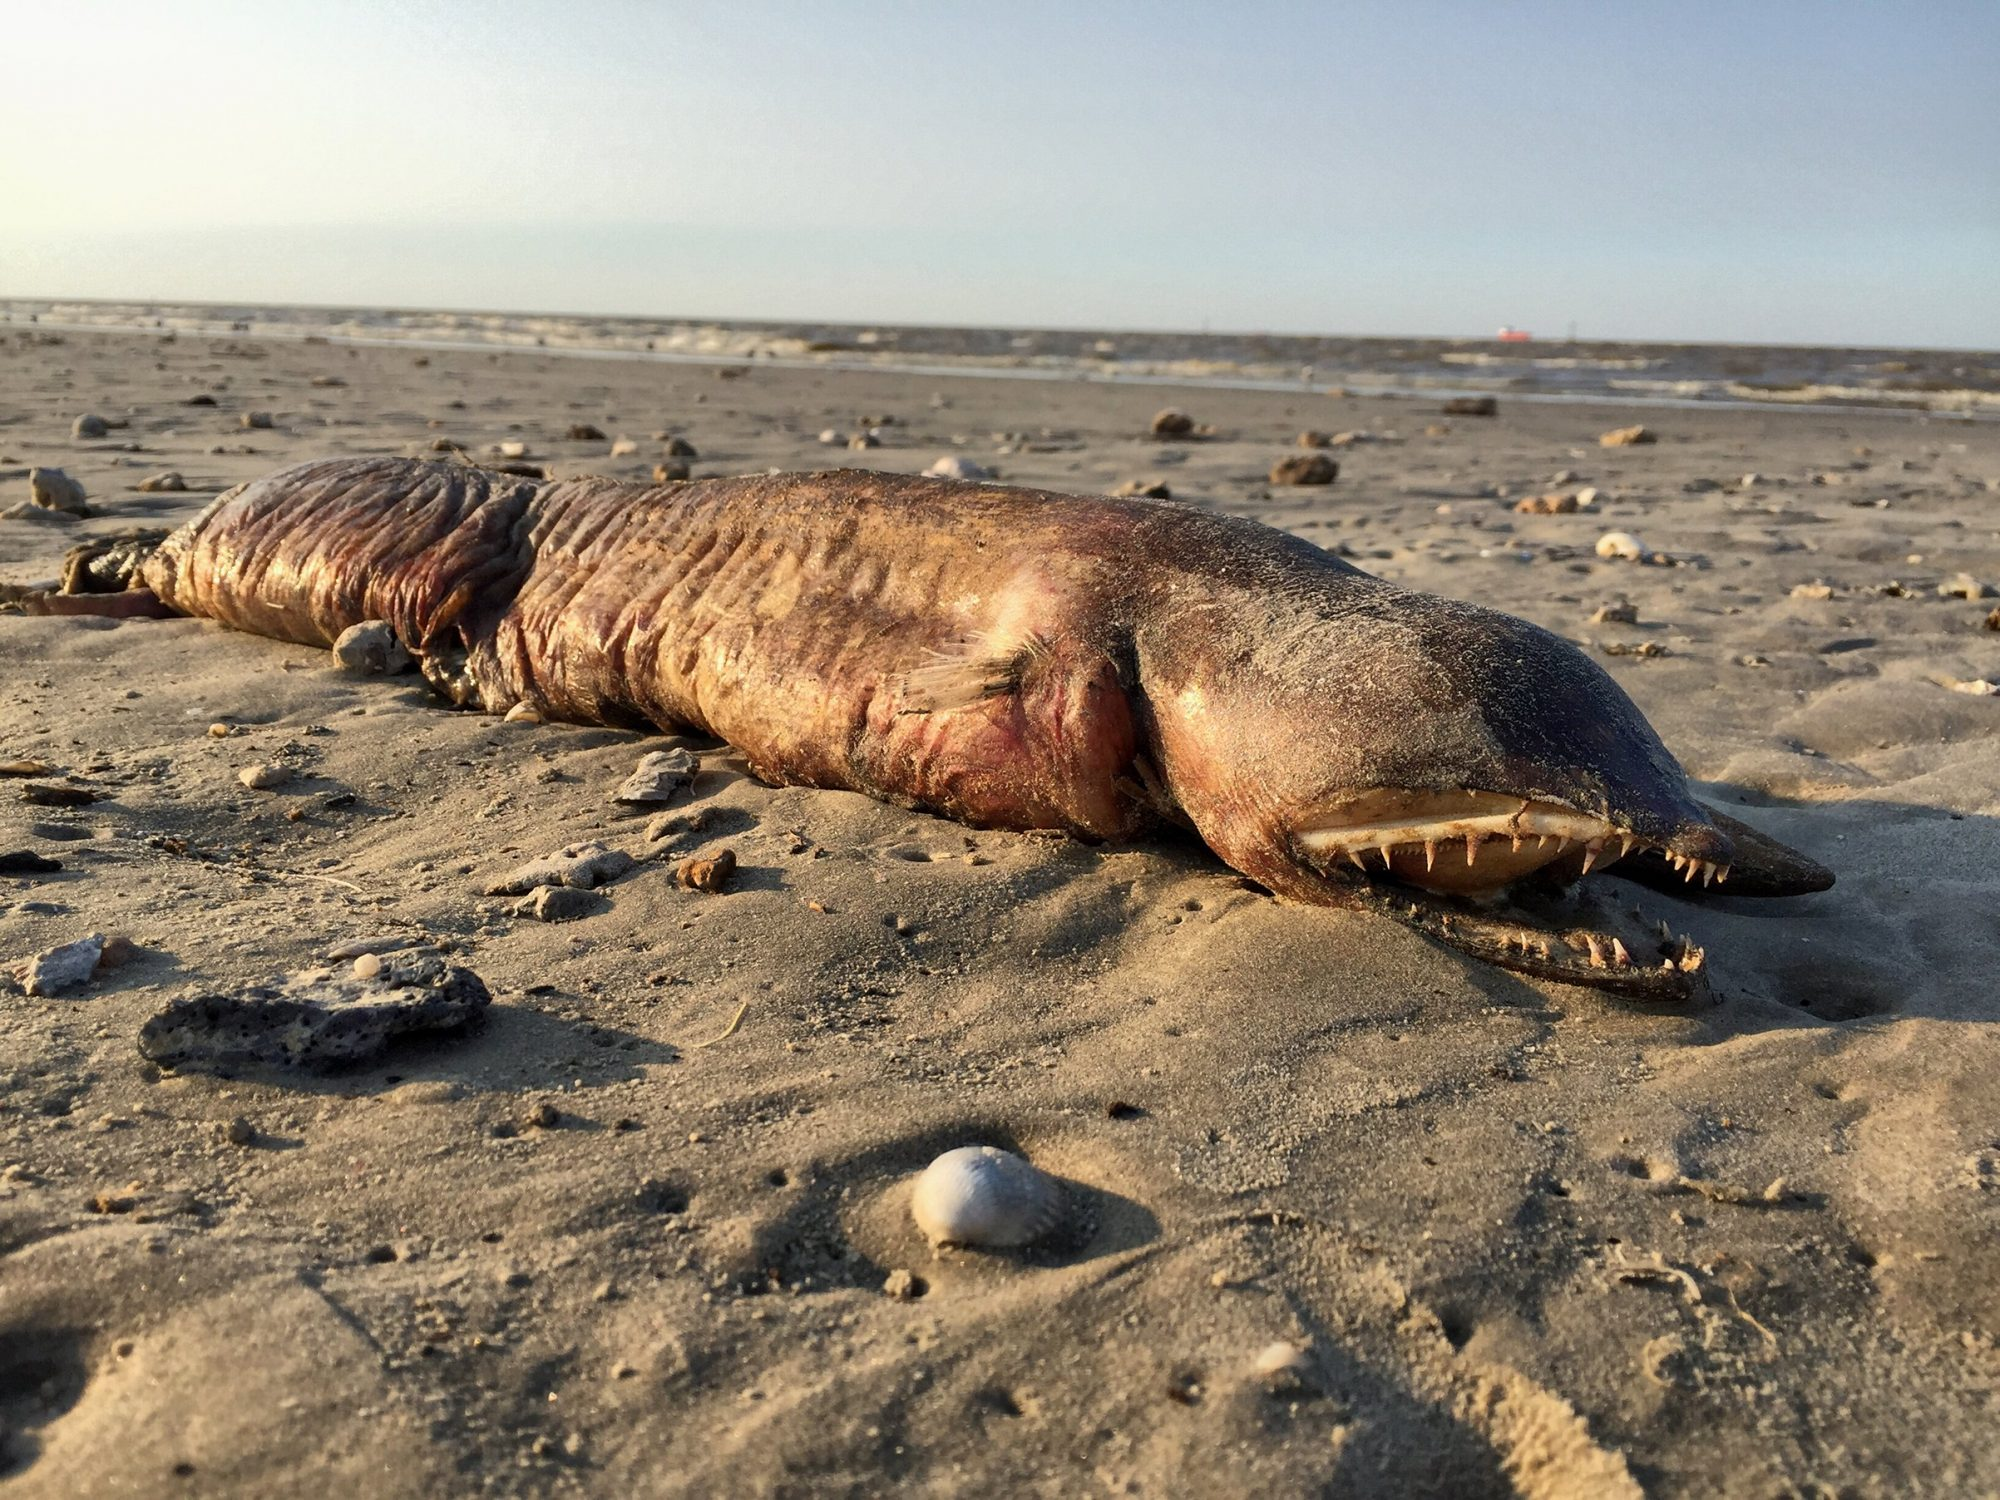 A sea creature was found on a beach in Texas City, Texas on Sept. 6, 2017.